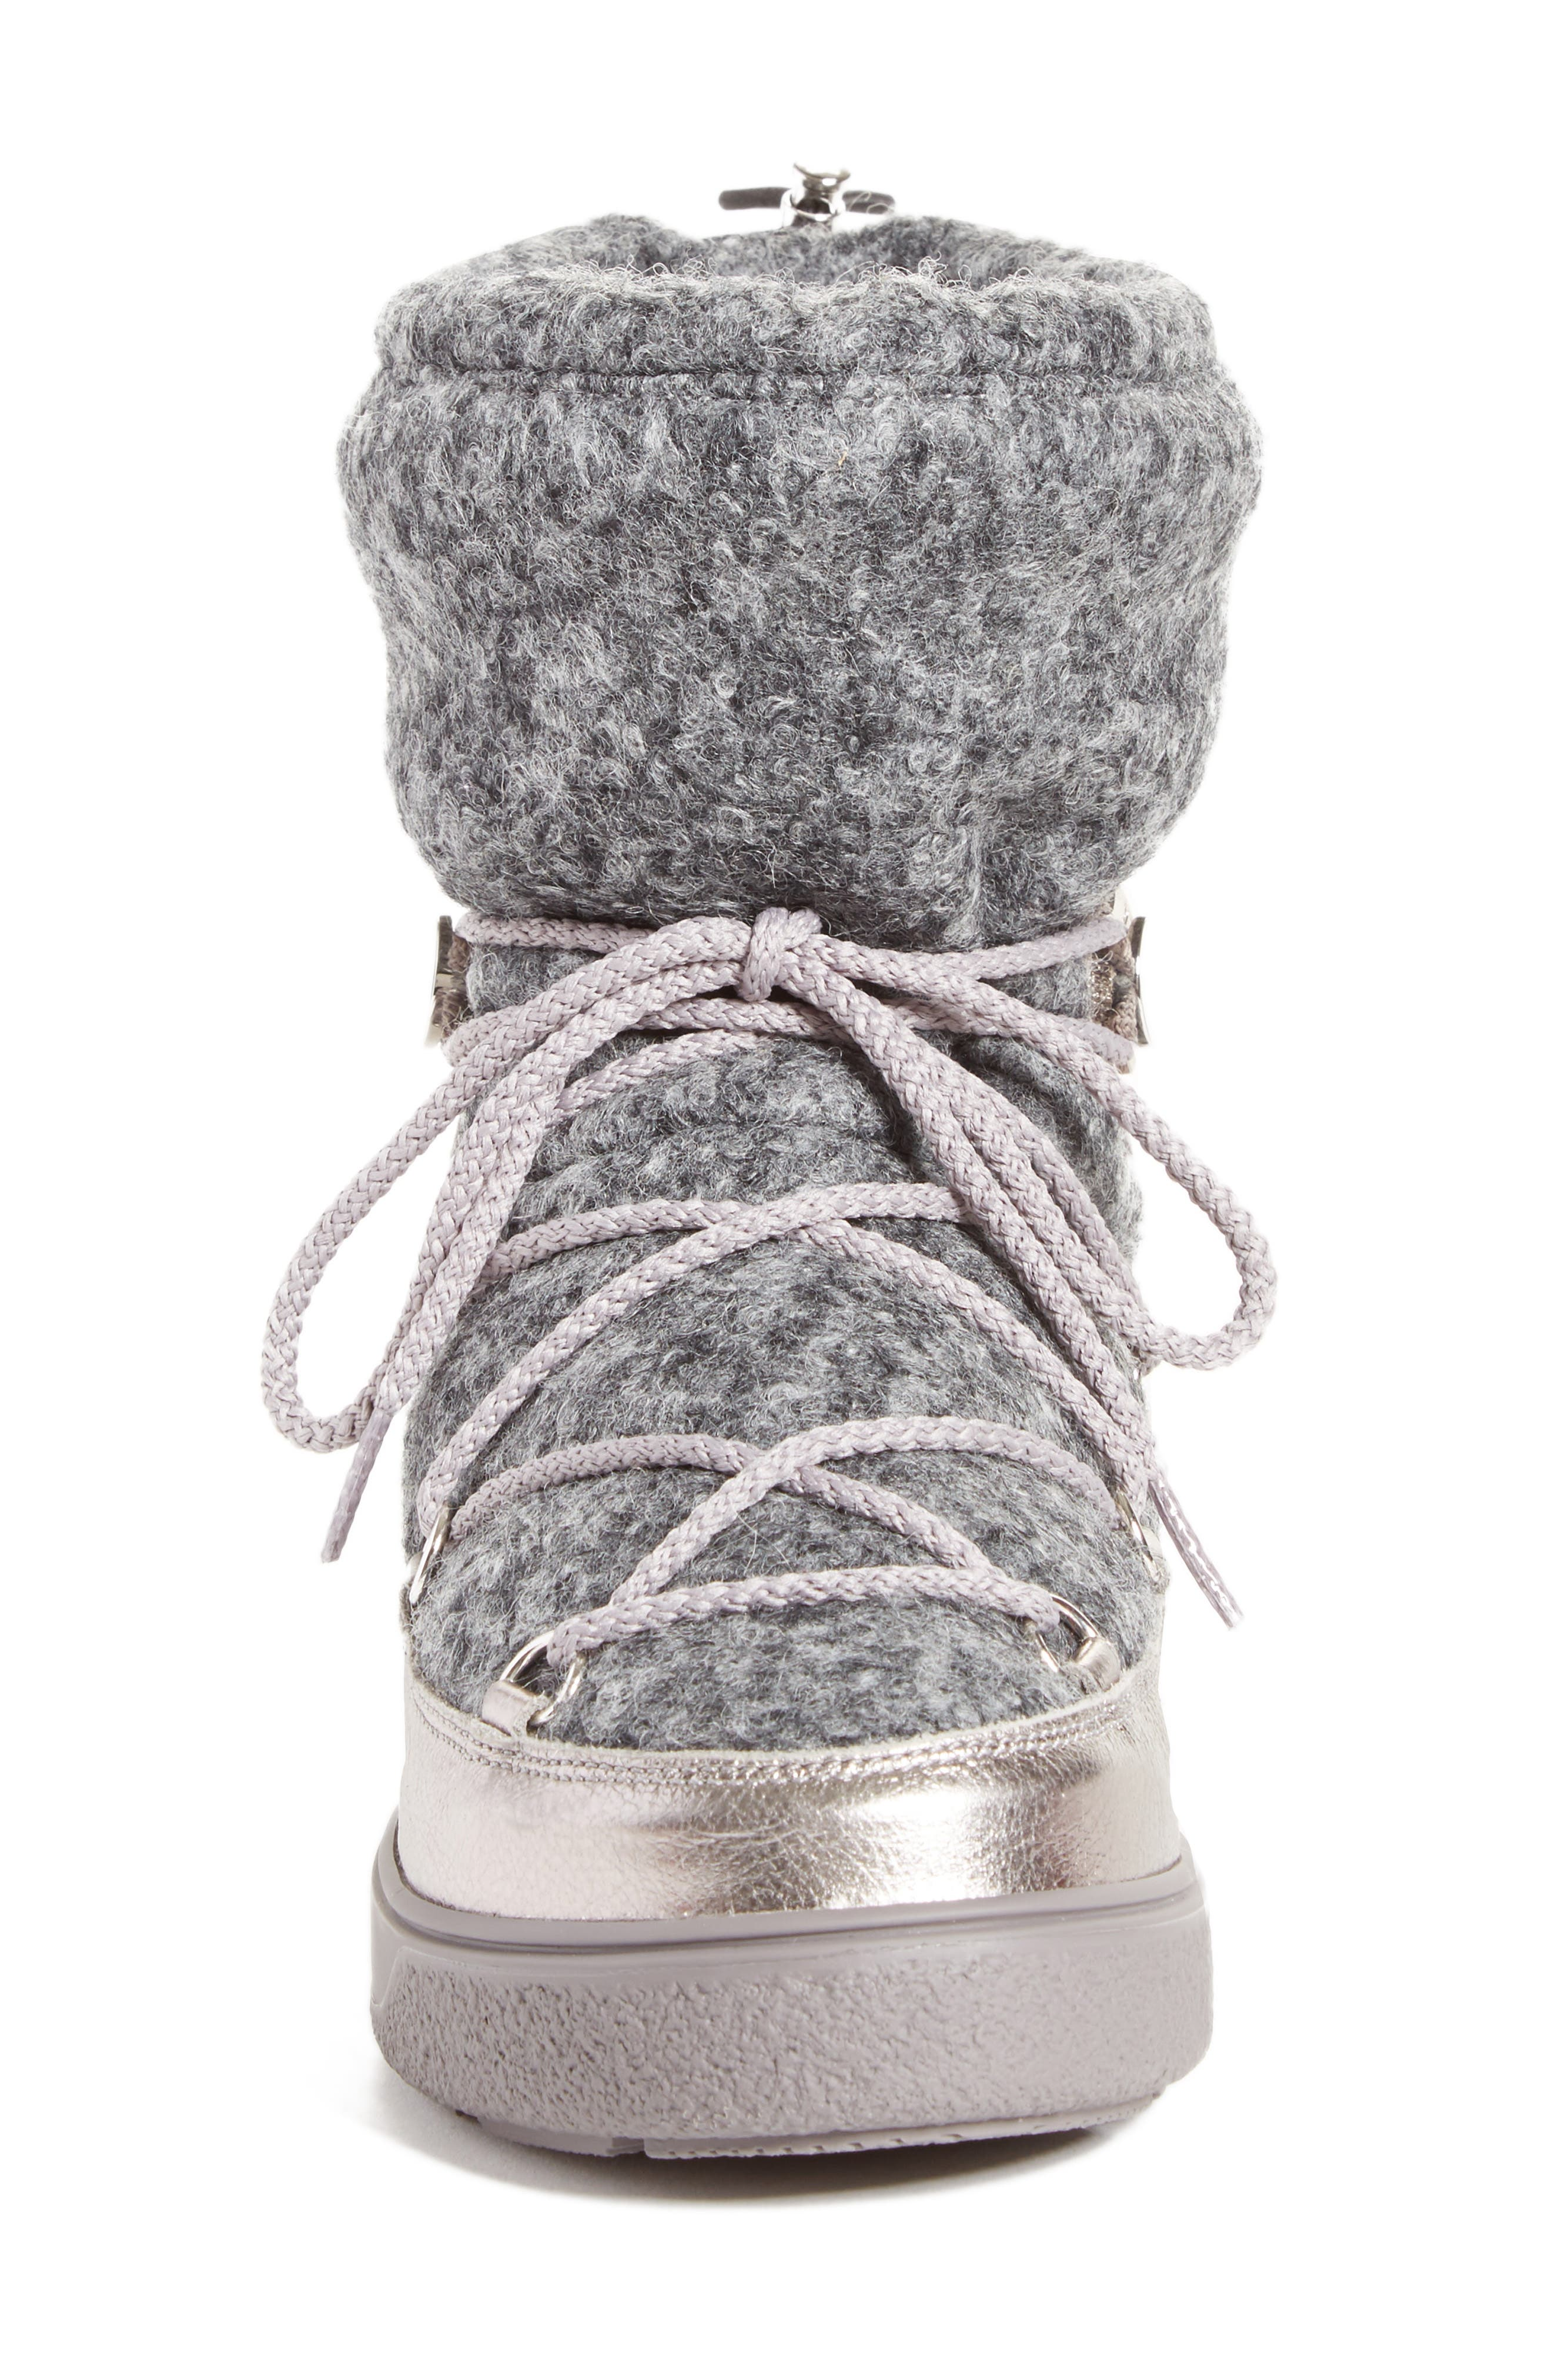 Ynnaf Boiled Wool Lined Snow Boot,                             Alternate thumbnail 4, color,                             045